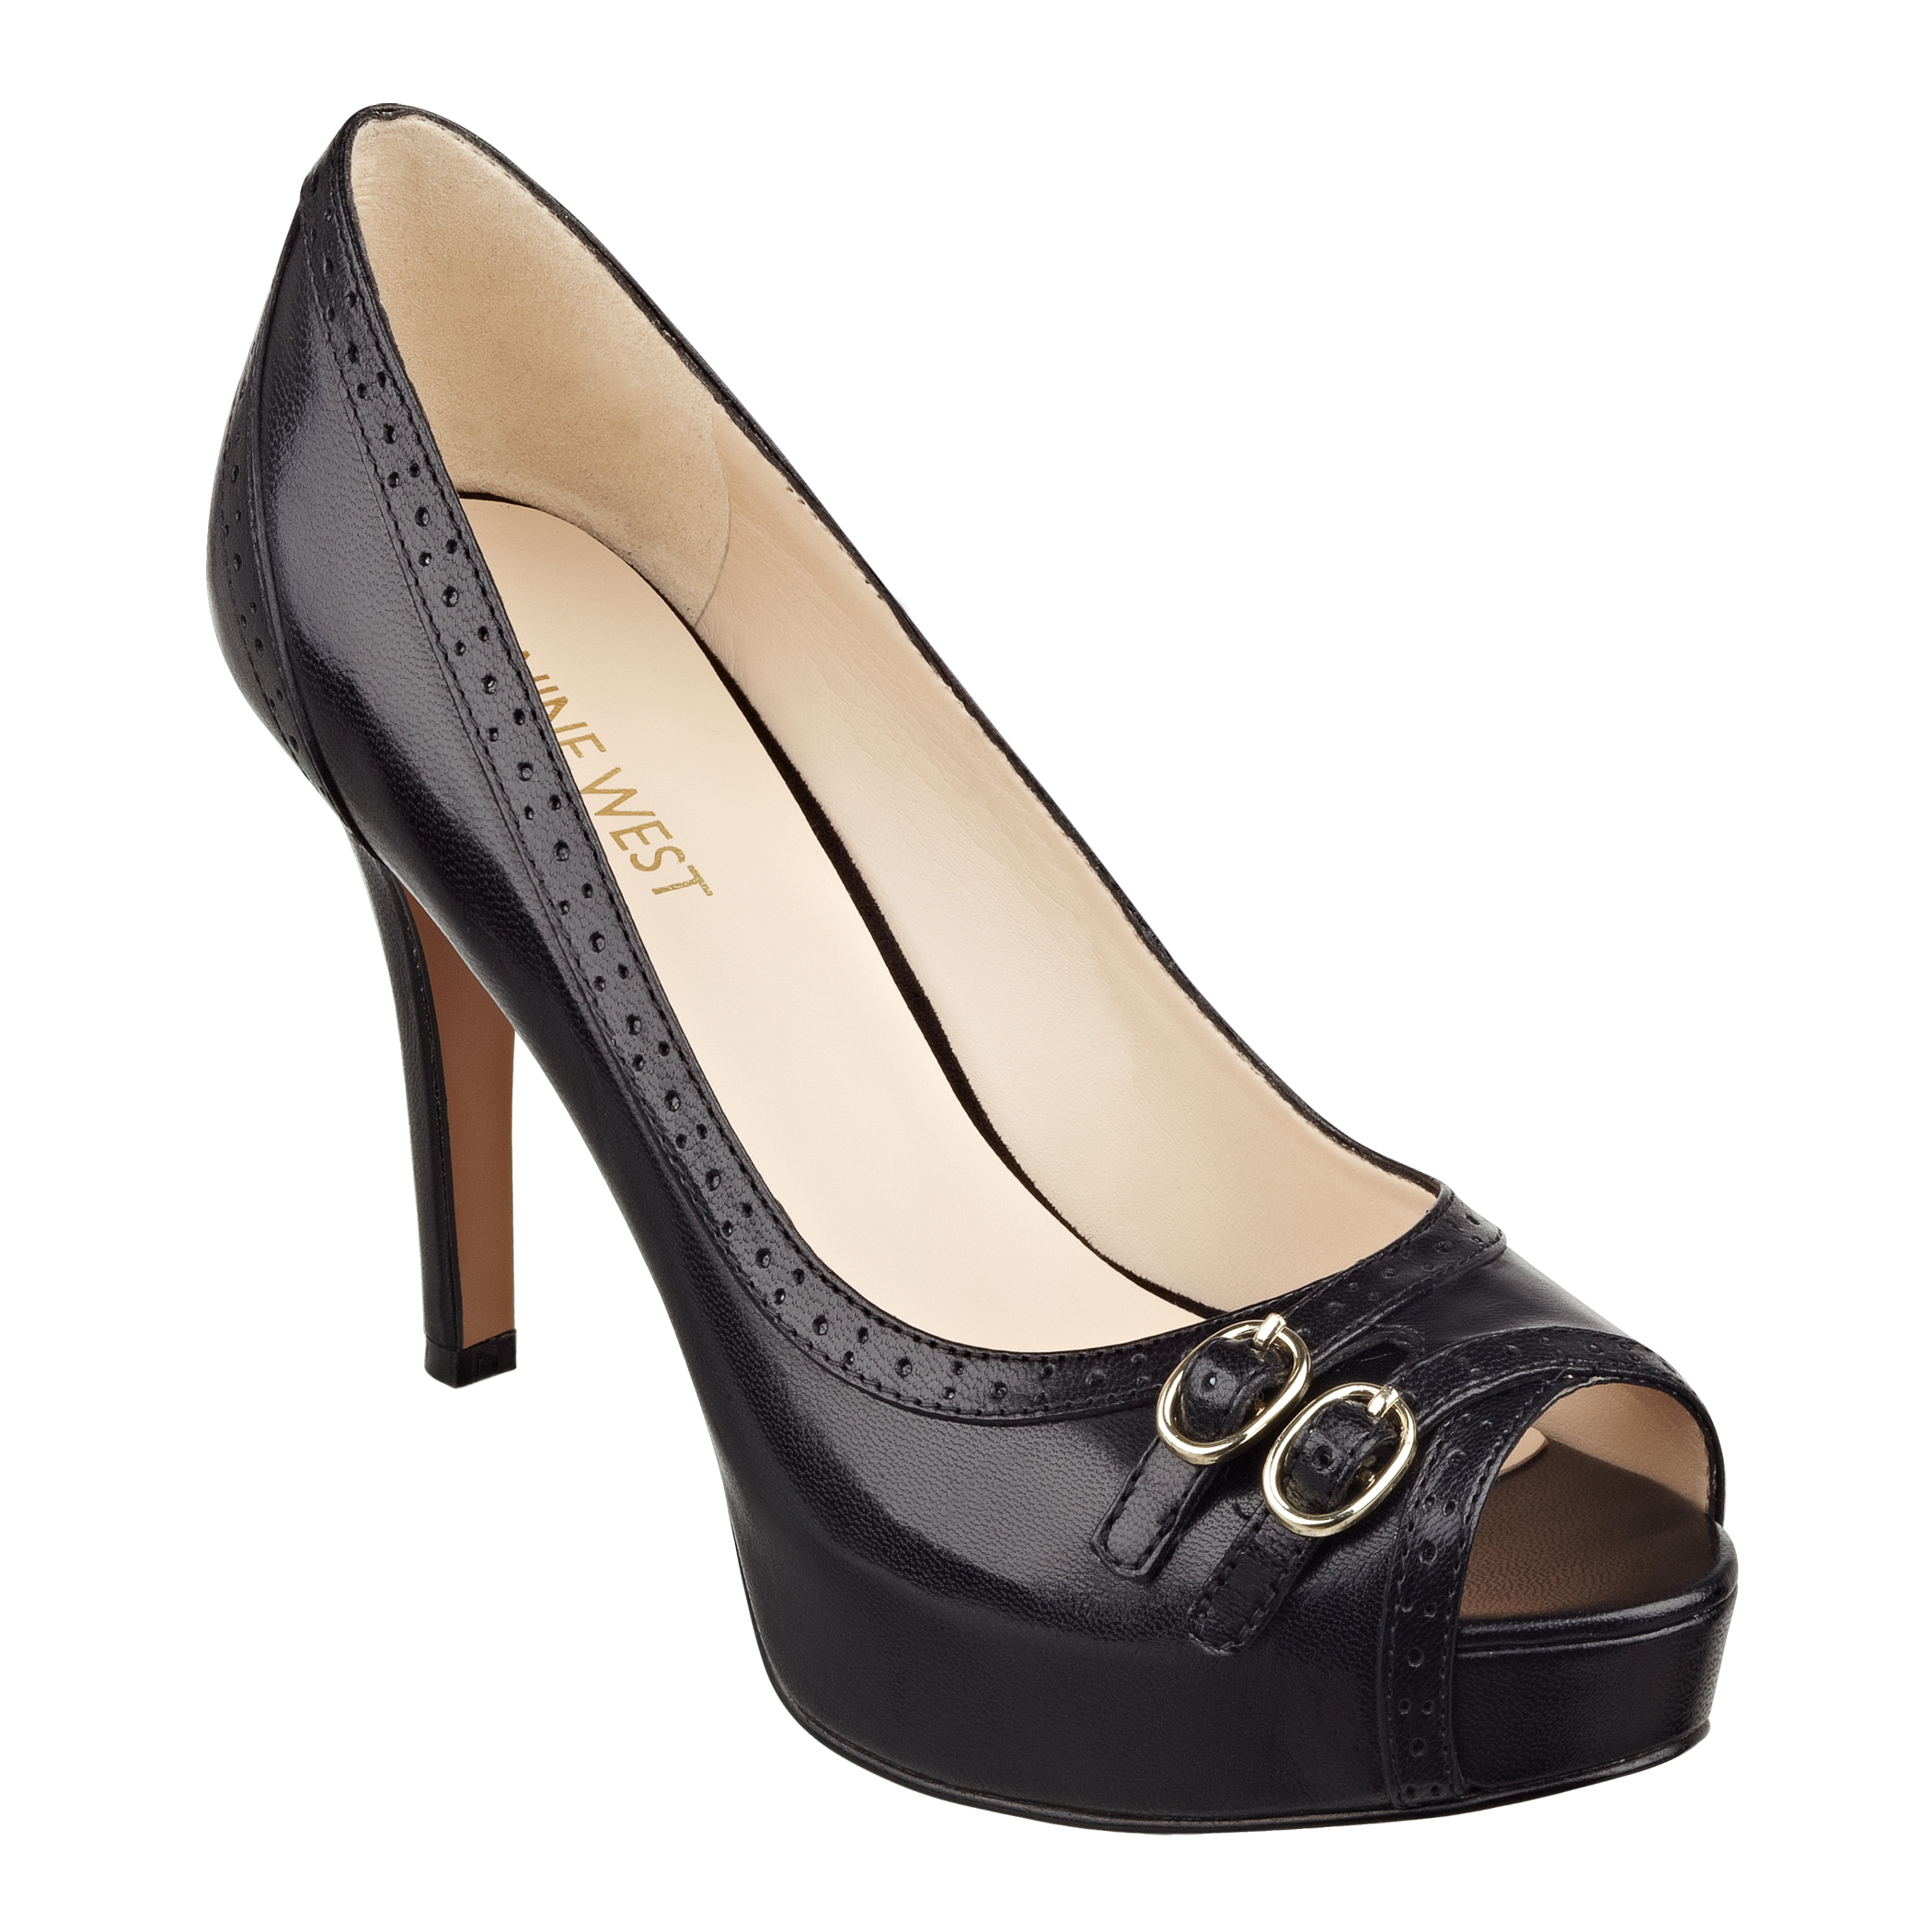 Latest Fashion of Stiletto & Heels Collection for women by Nine West(11)